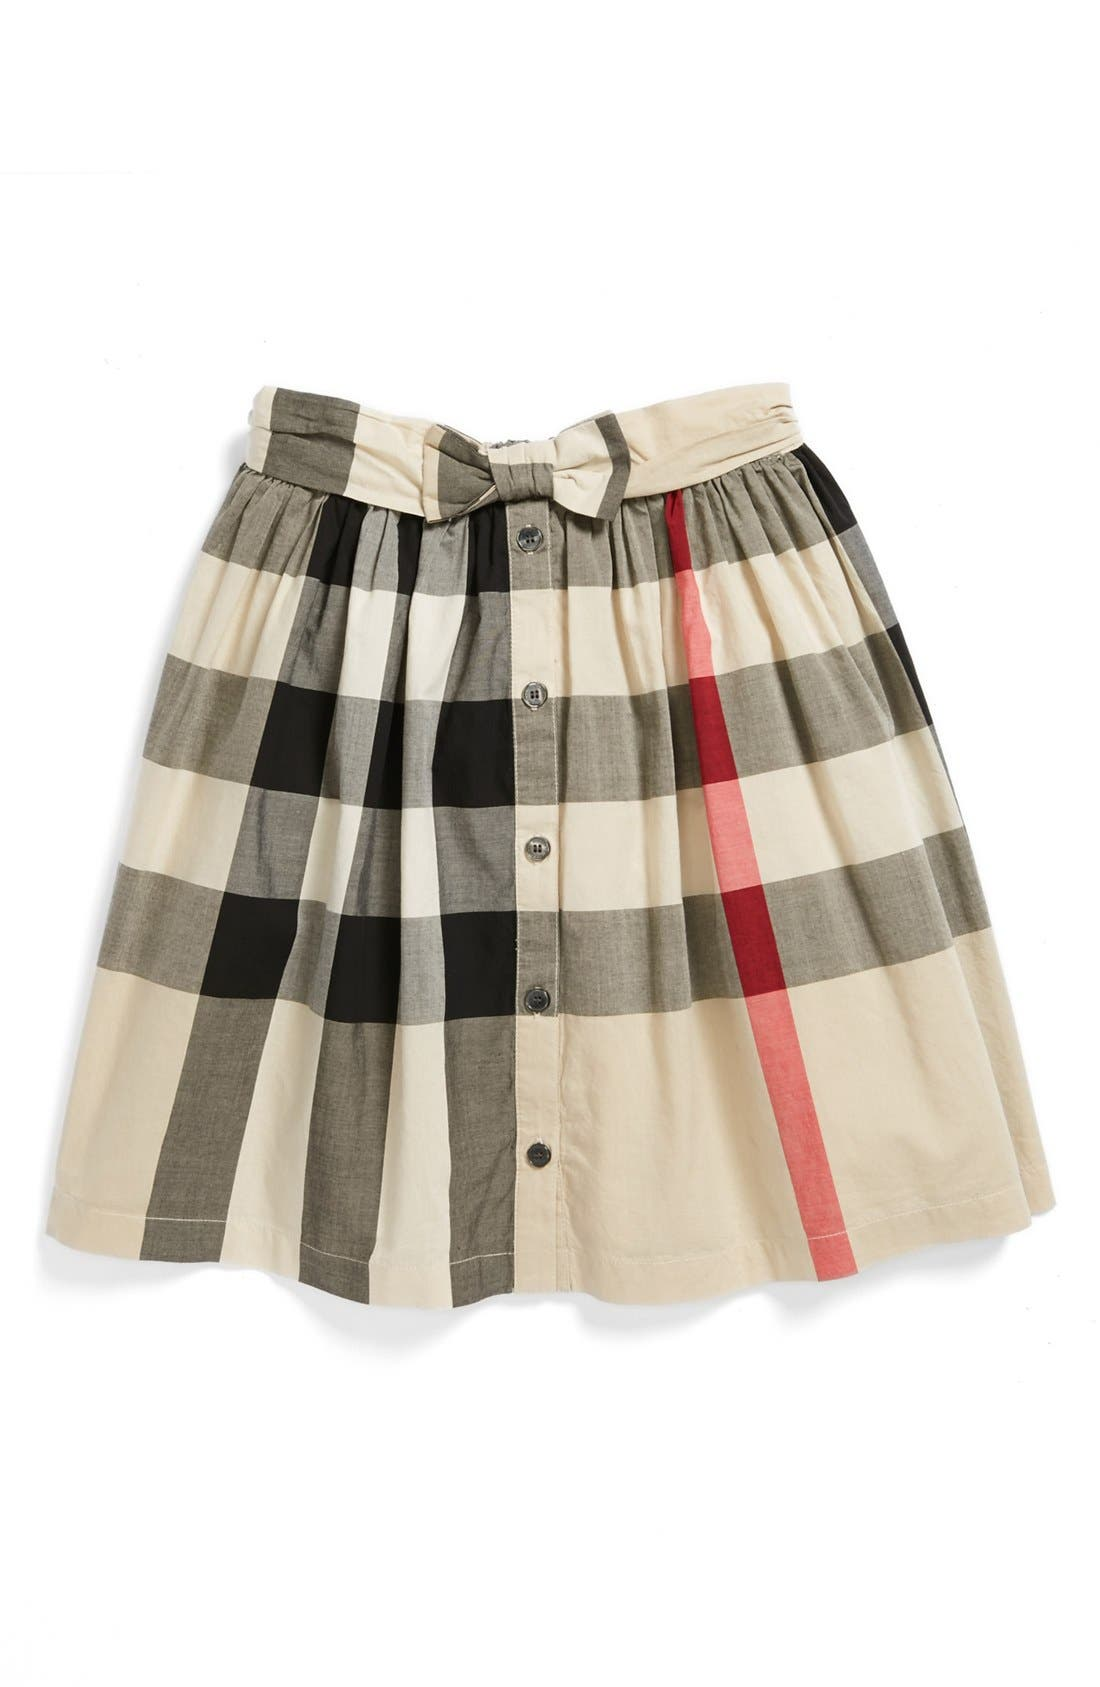 Alternate Image 1 Selected - Burberry 'Salima' Skirt (Big Girls)